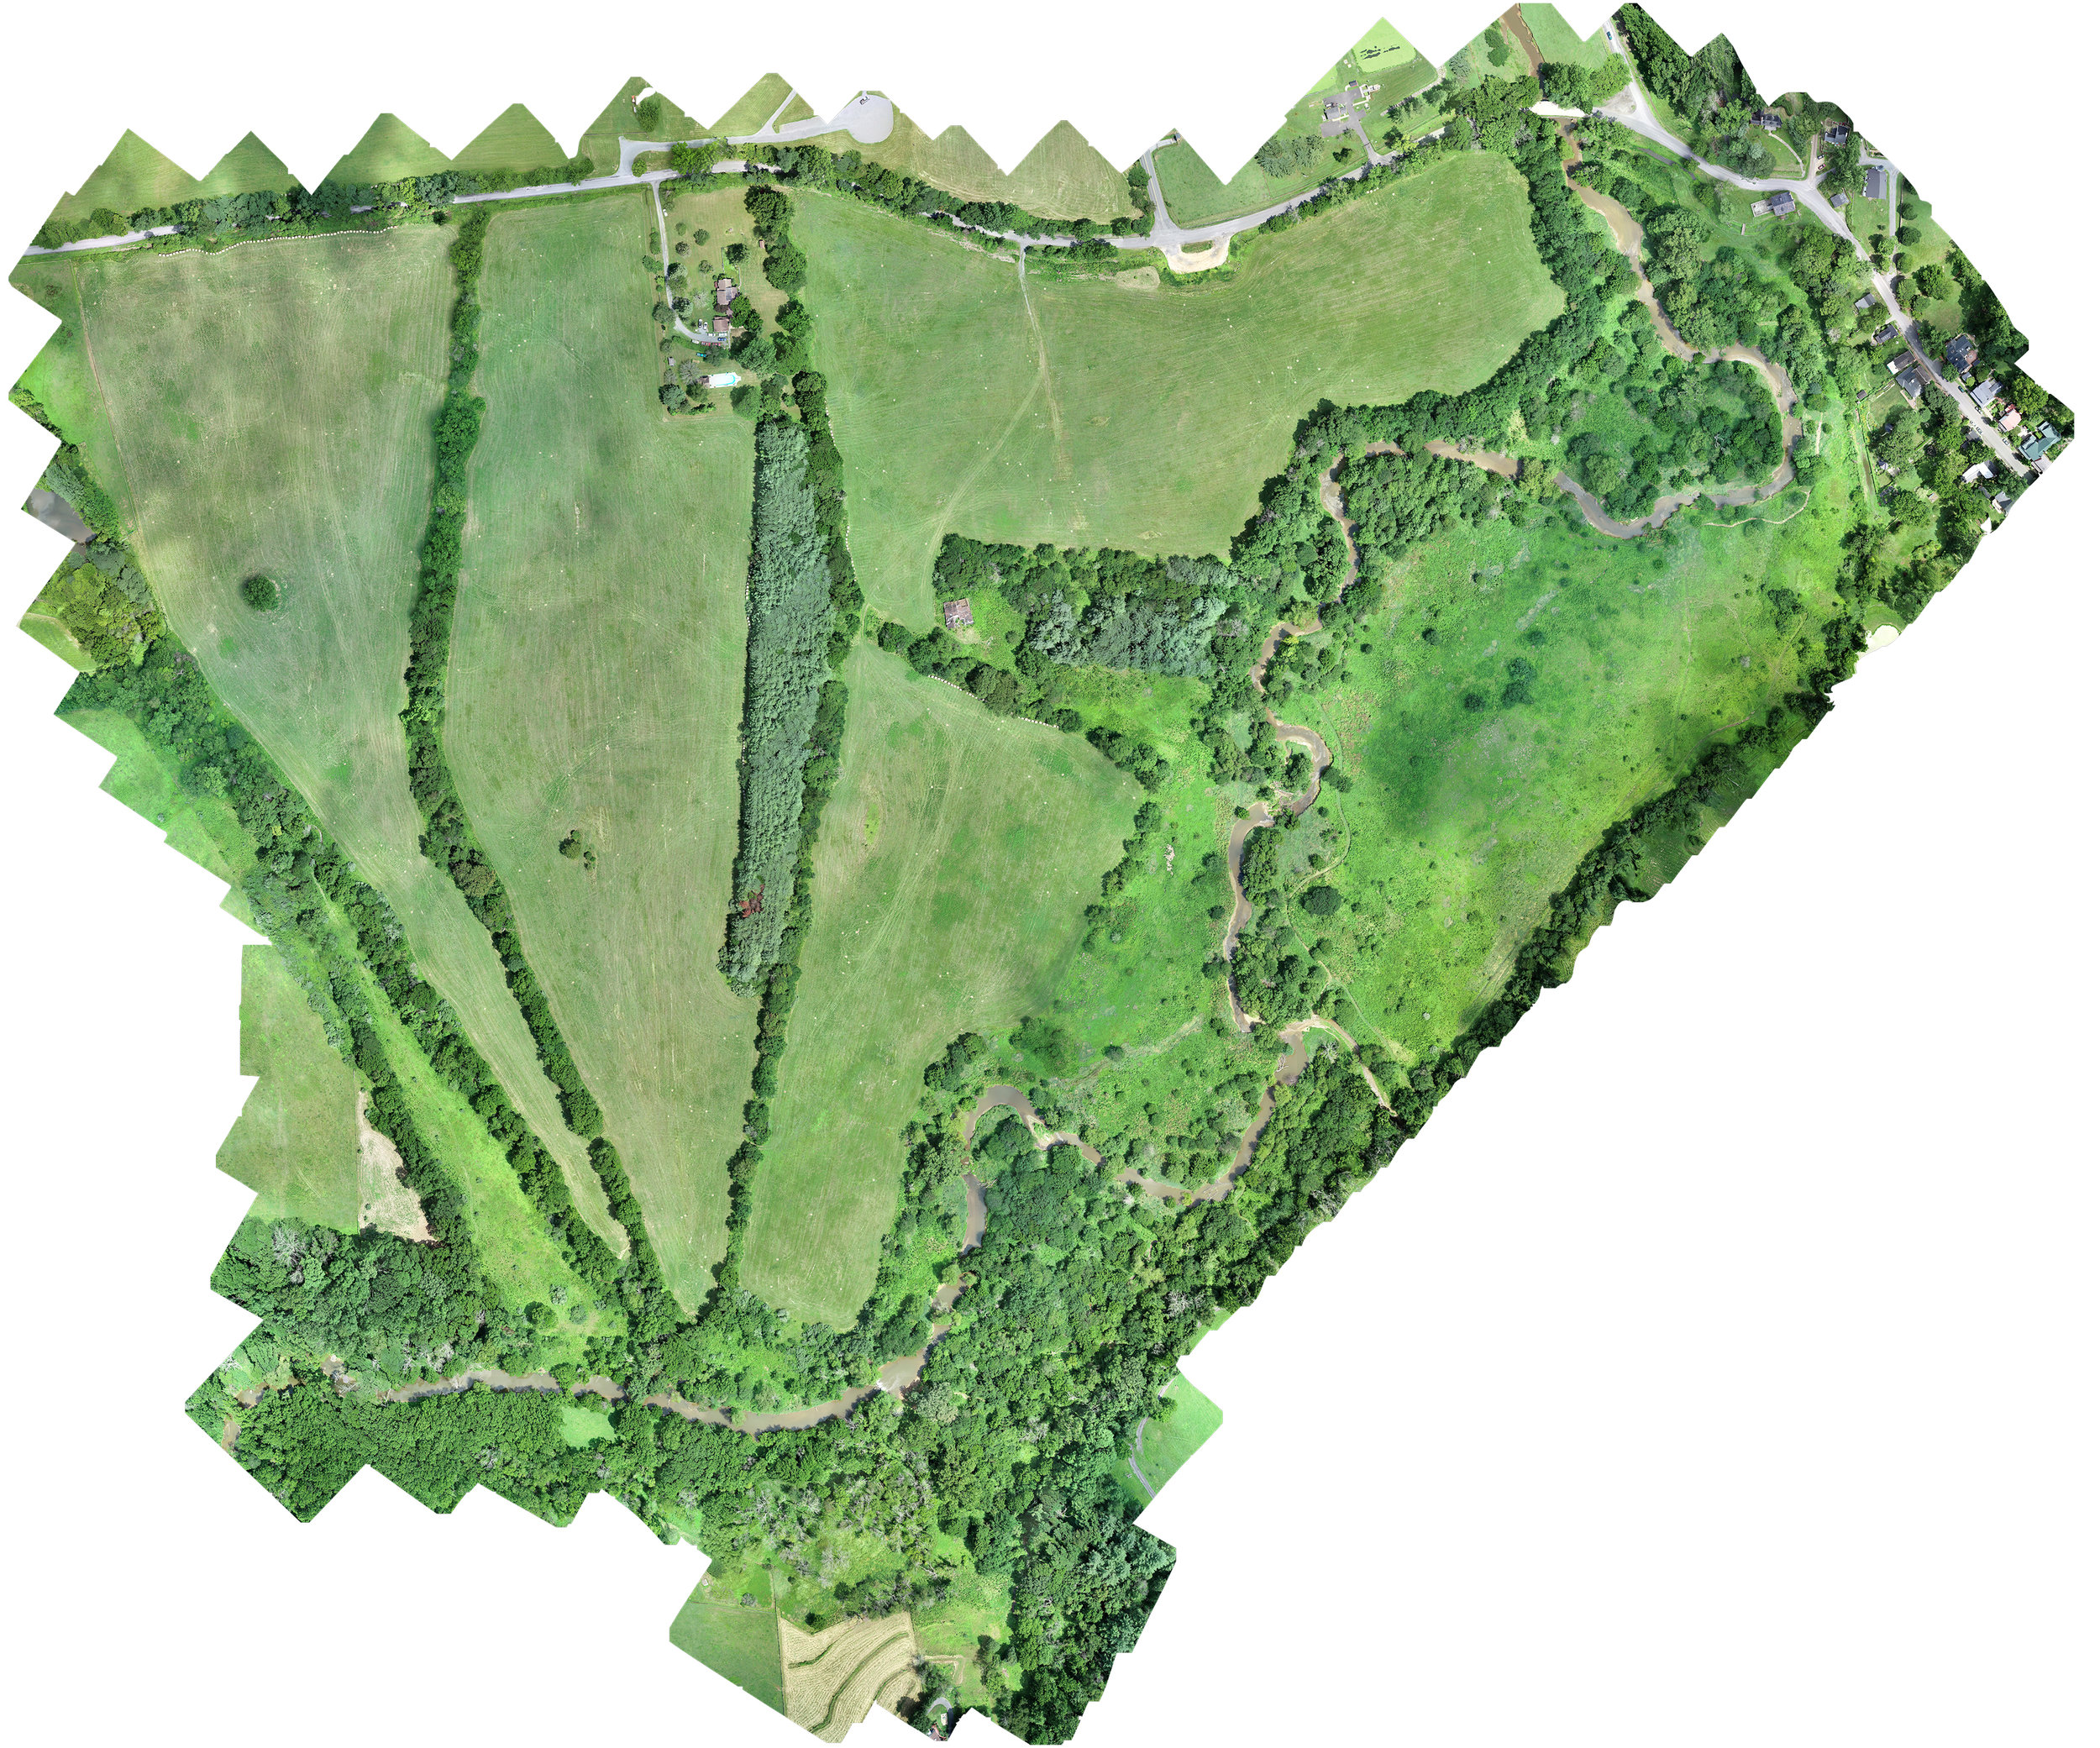 OrthoMosaic of the Phillips Farm, 144 Acres, Waterford, Virginia, 2019